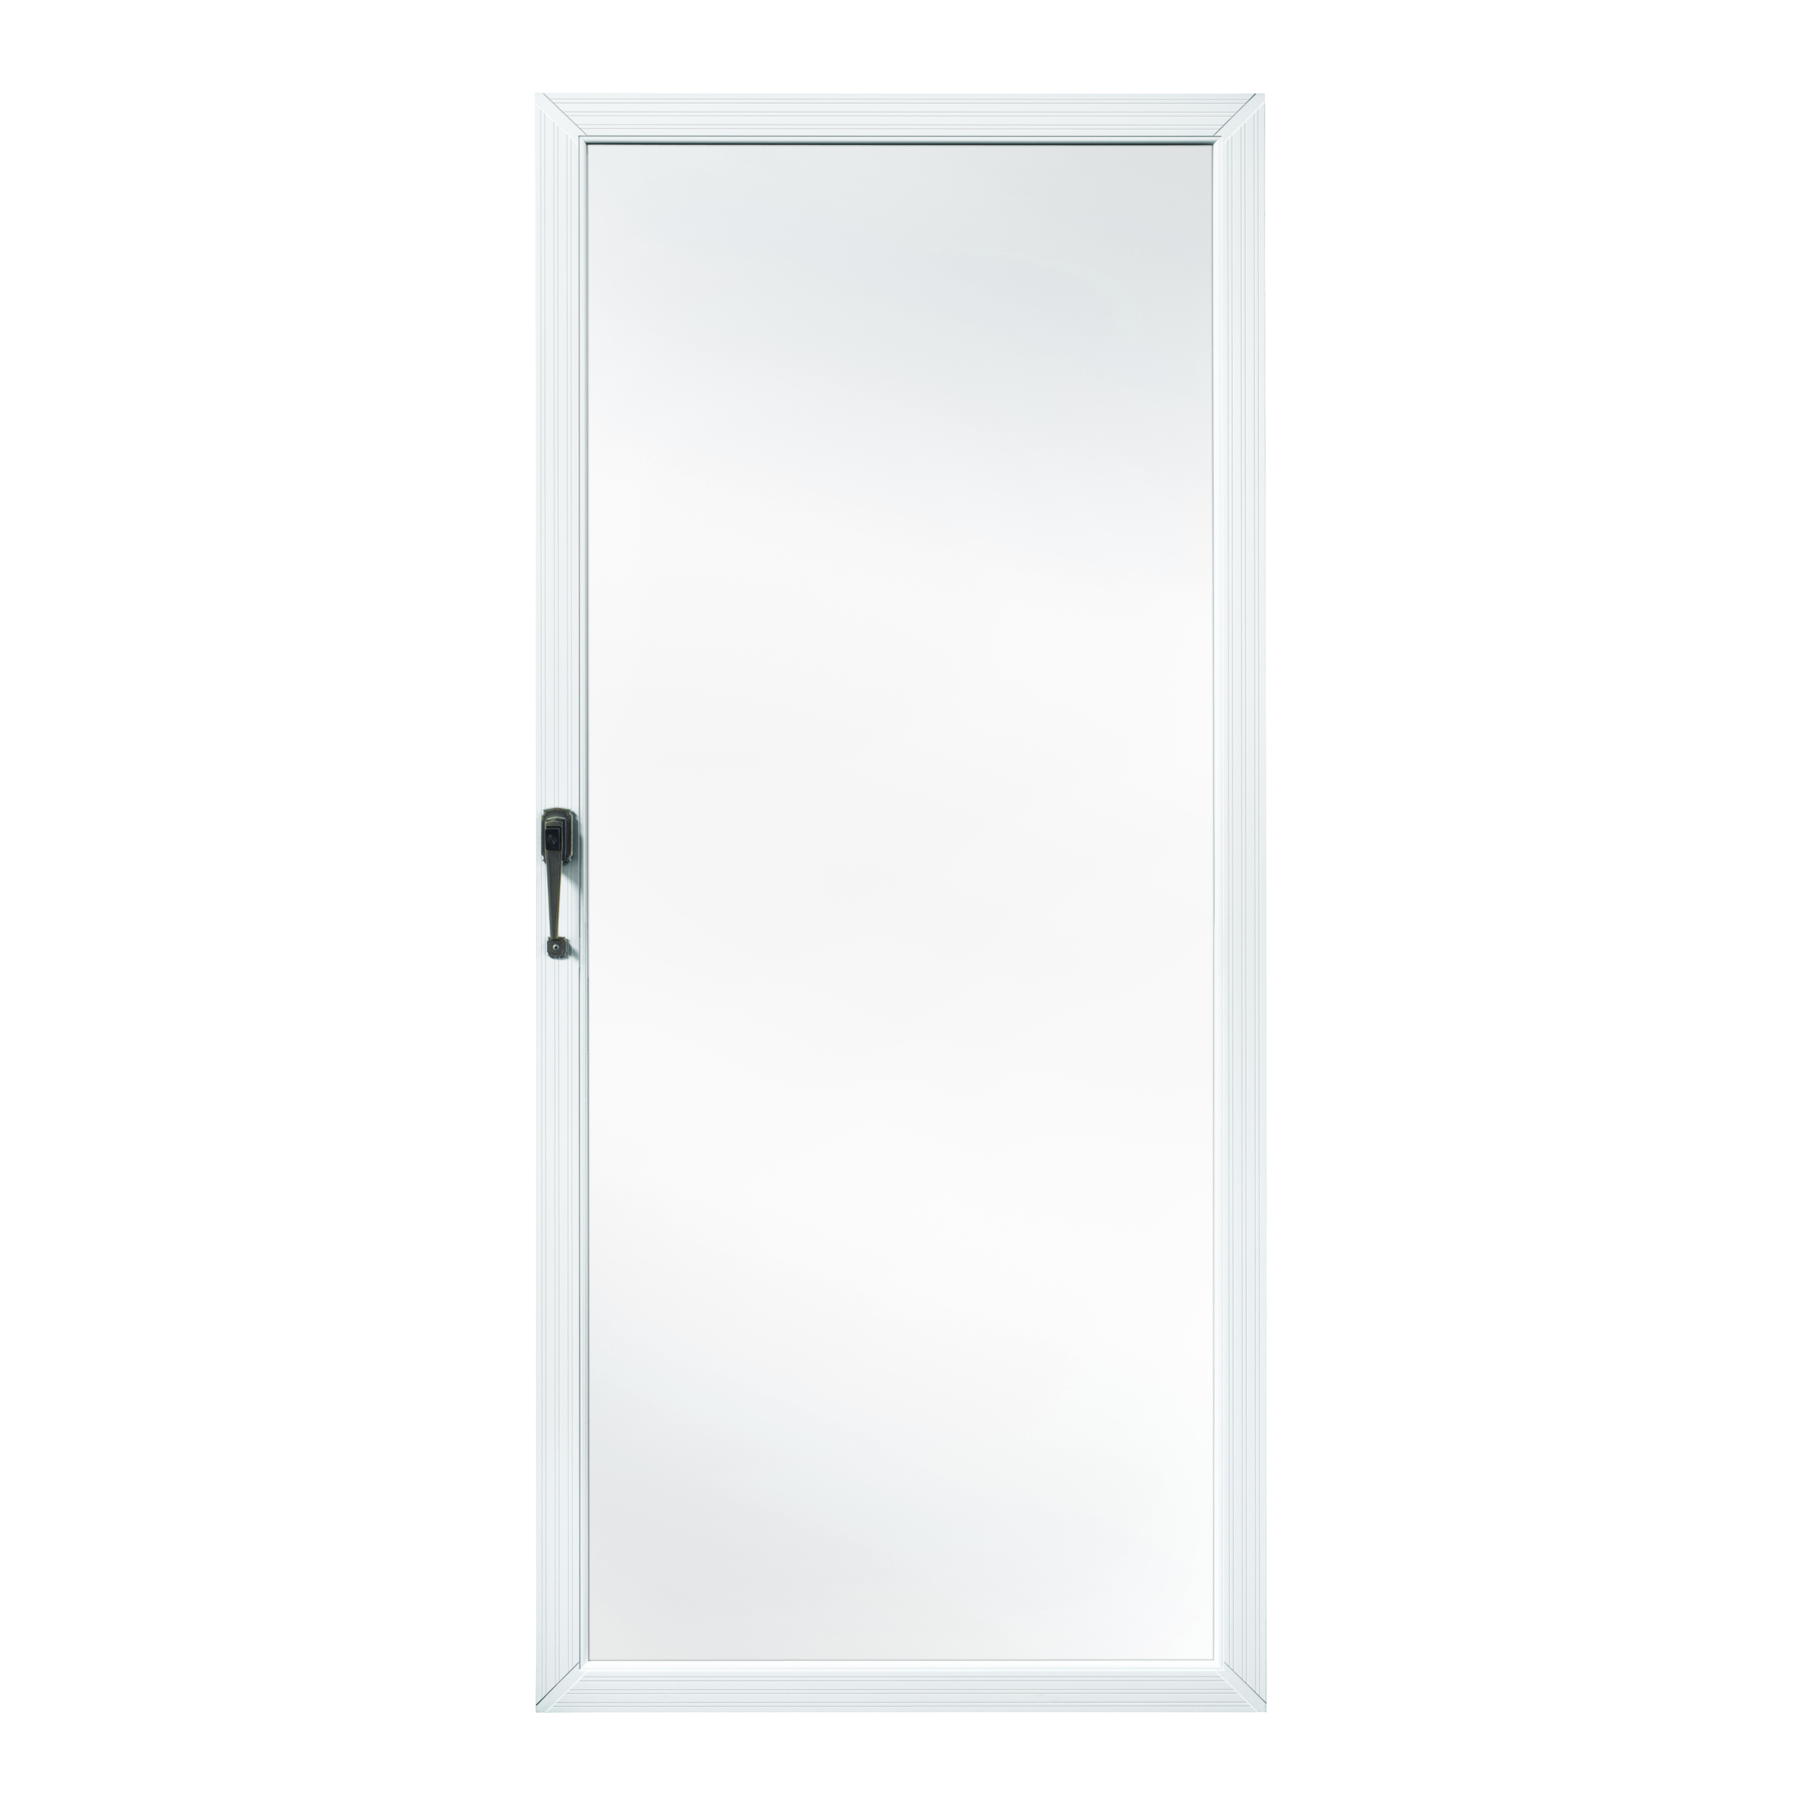 Fox Weldoor Model 100 Storm Door